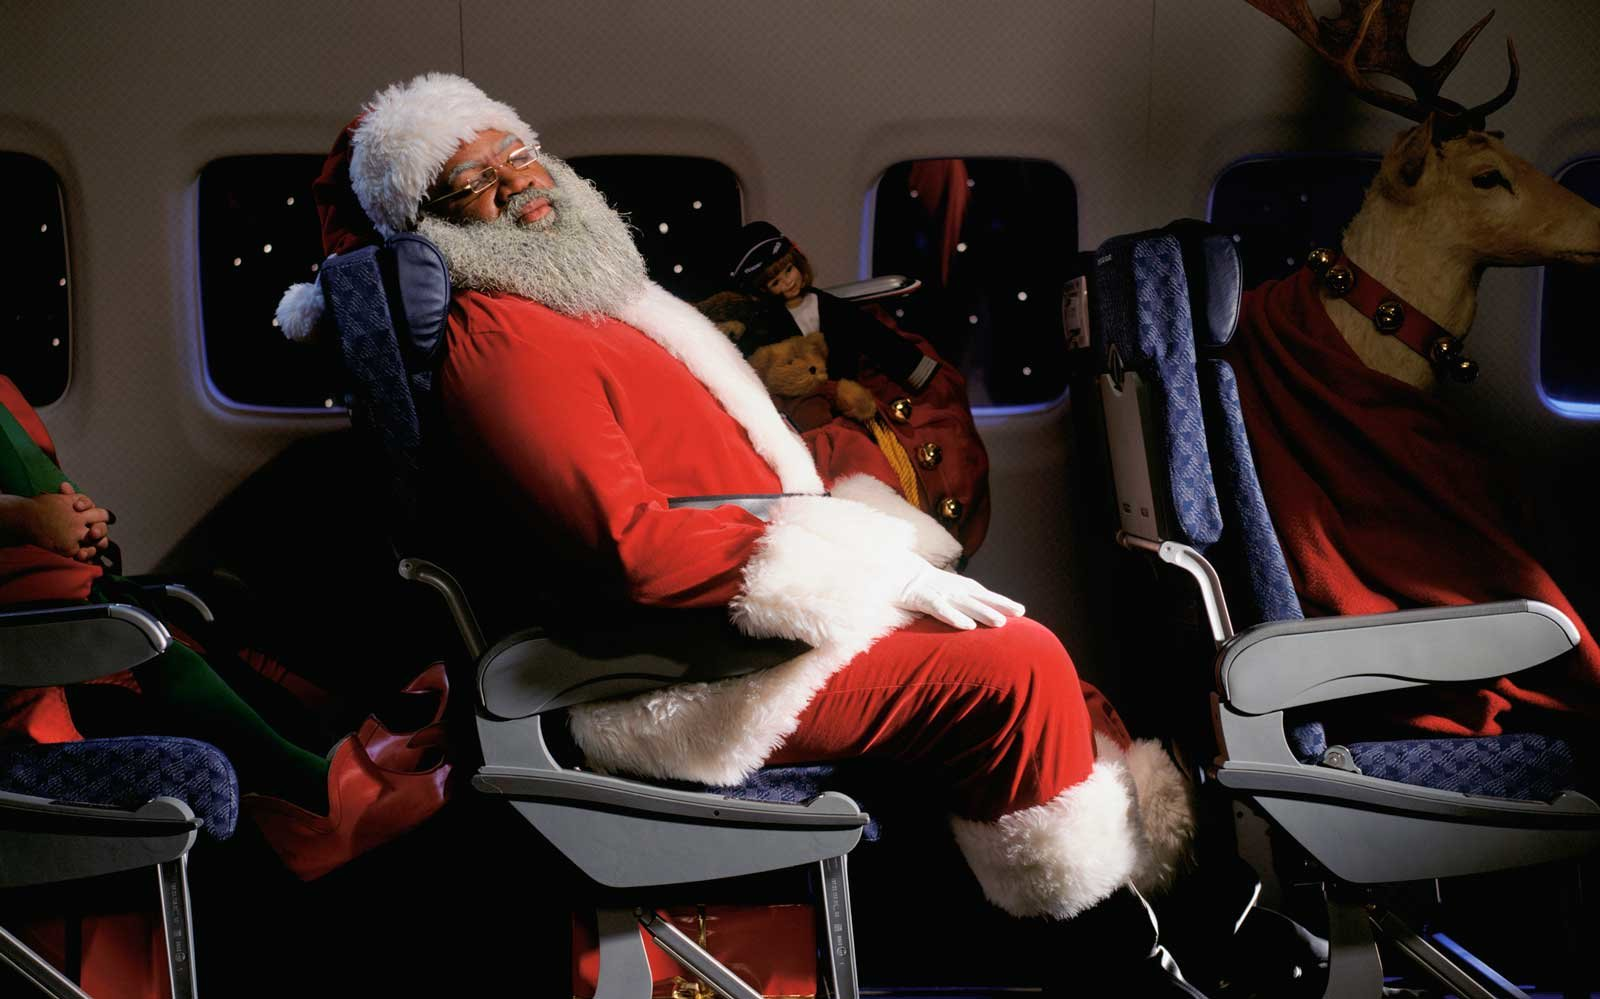 Santa on Airplane